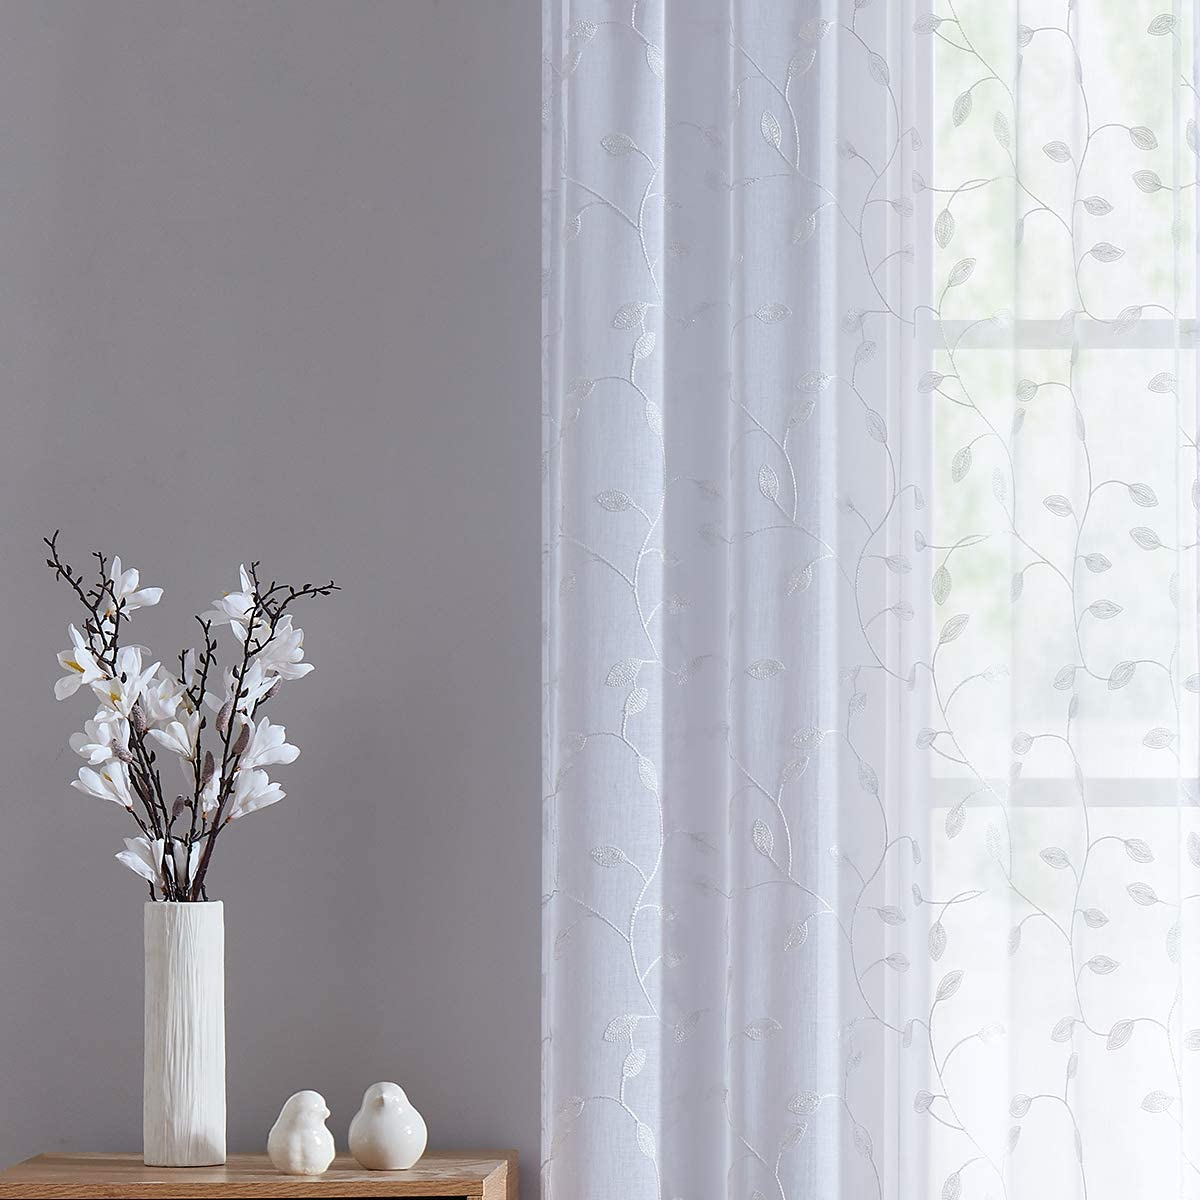 Fragrantex Bedroom Curtains White Embroidered Sheer Curtains for Home Botanical Window Curtain Panels for Living Room 95 inch Long Curtains Rod Pocket W38xL95 2Panels